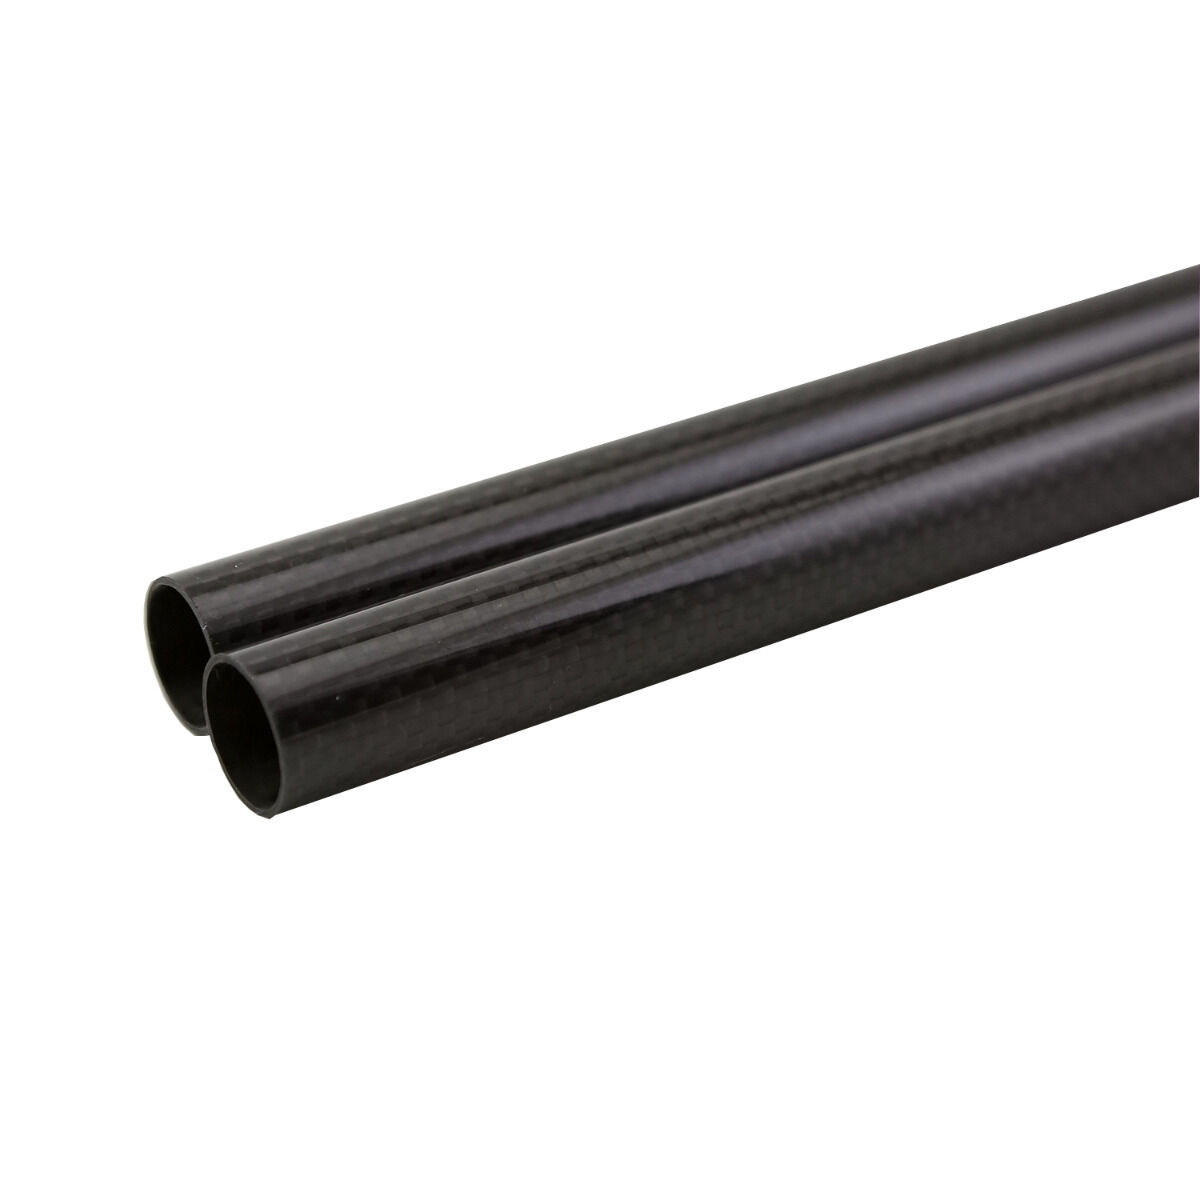 2Pcs 3K ROTOLO avvolto 29mm Carbon Fiber Tube 25mm x 29mm x 500mm LUCIDA MATT Roll